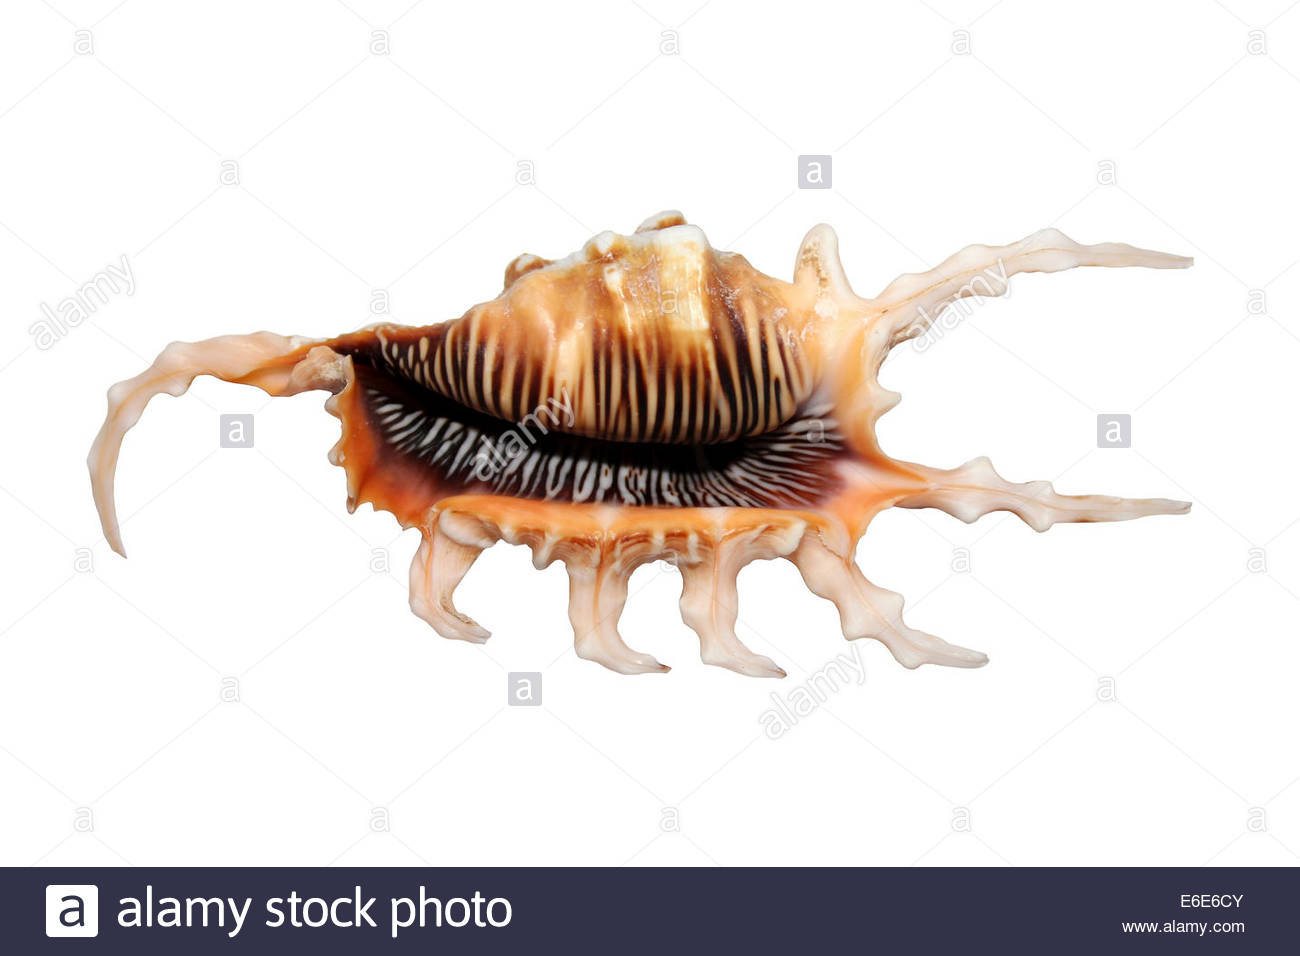 Scorpion Spider Conch Shell Lambis Scorpius Stock Photo, Royalty.